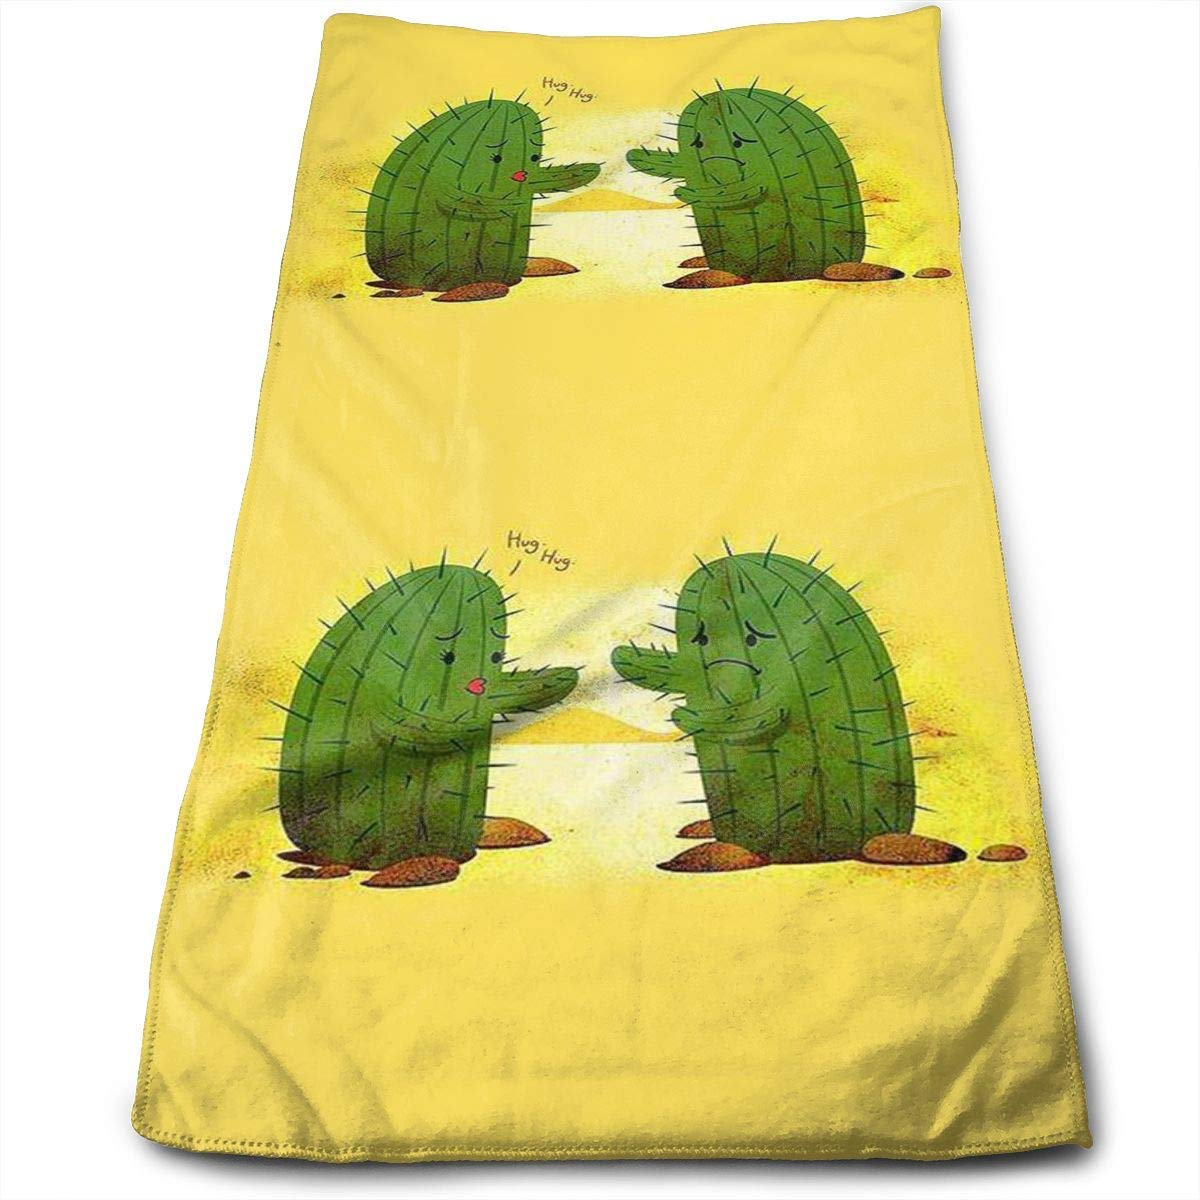 OQUYCZ Hug Cactus Adult Athletic.jpg Bath Towels for Bathroom-Hotel-SPA-Kitchen-Set - Circlet Egyptian Microfiber - Highly Absorbent Hotel Quality Towels 12' X 27.5'